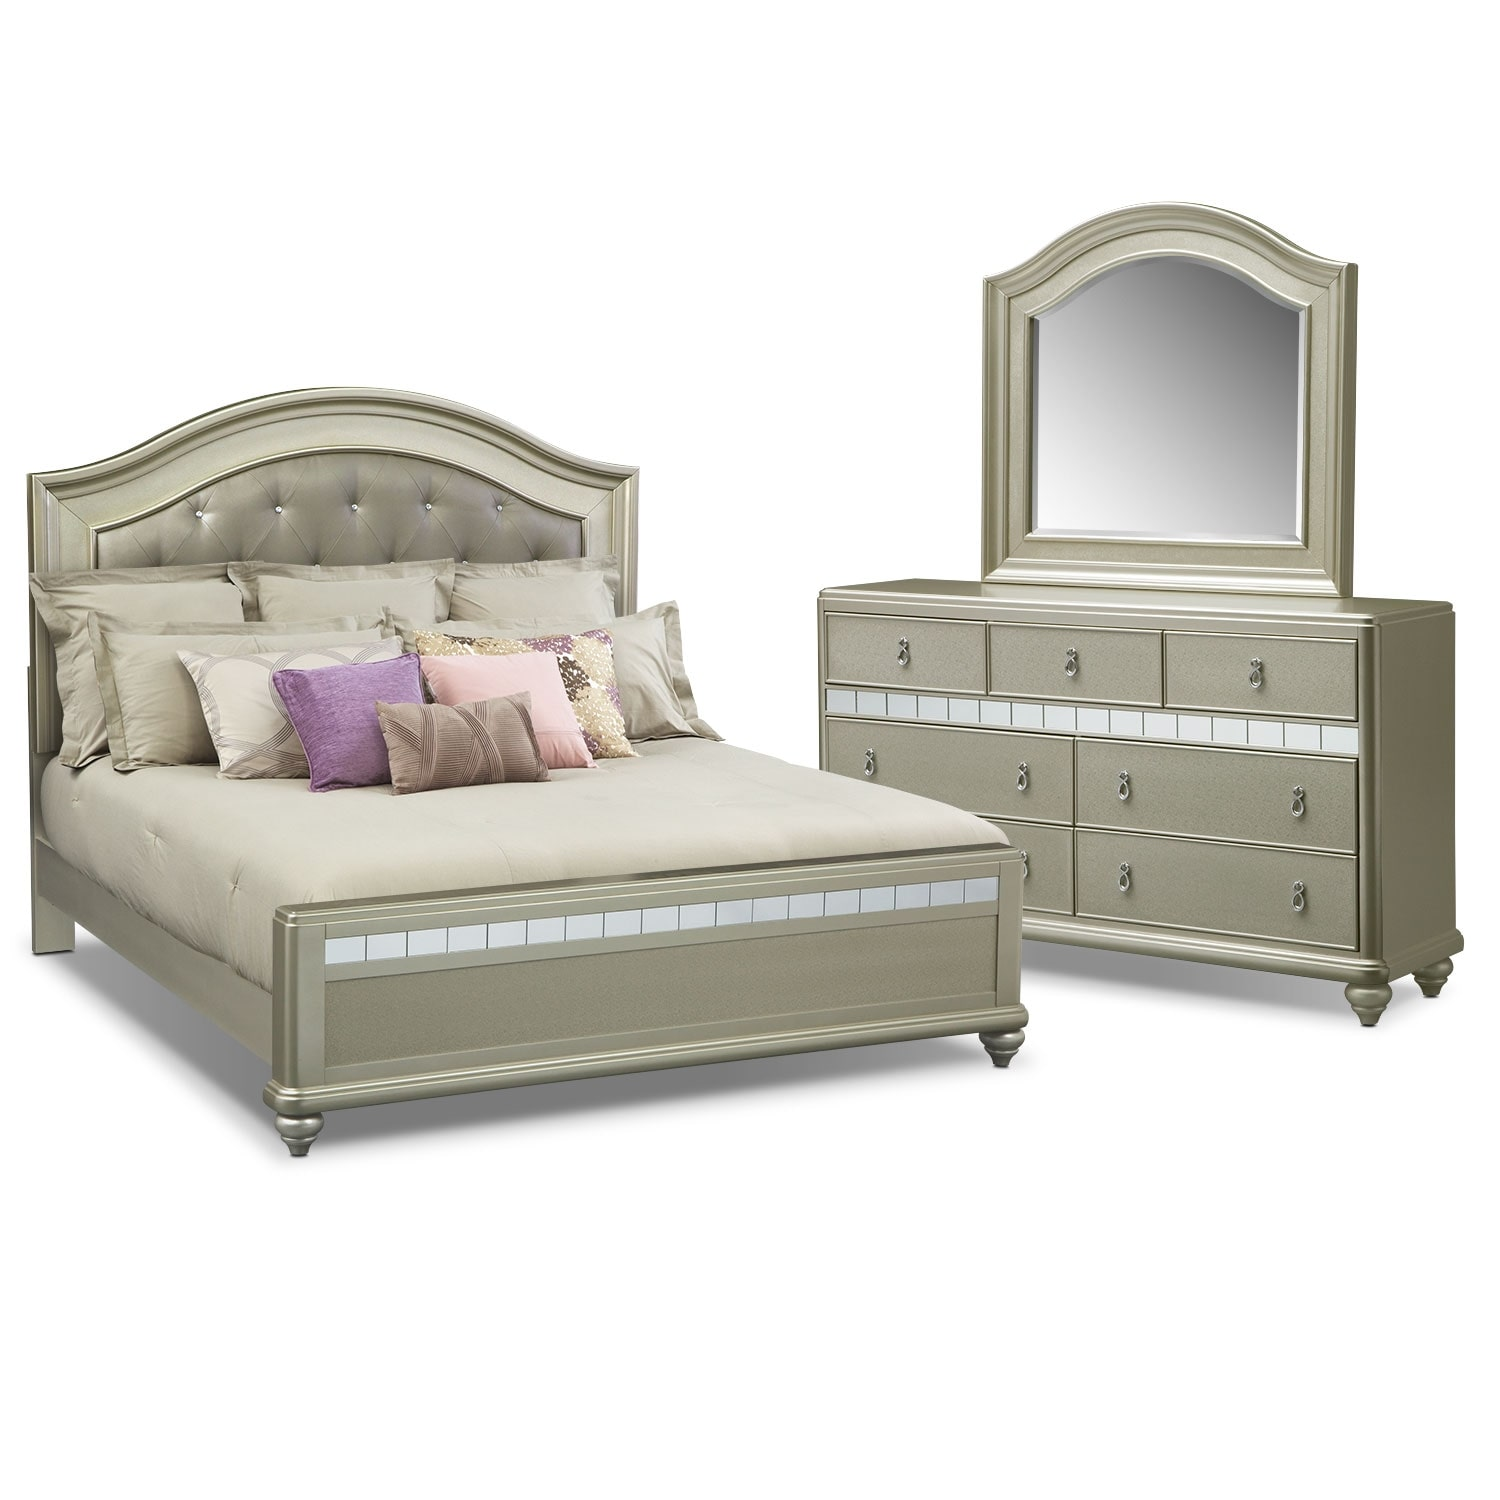 Bedroom Furniture - Serena King 5-Piece Bedroom Set - Platinum